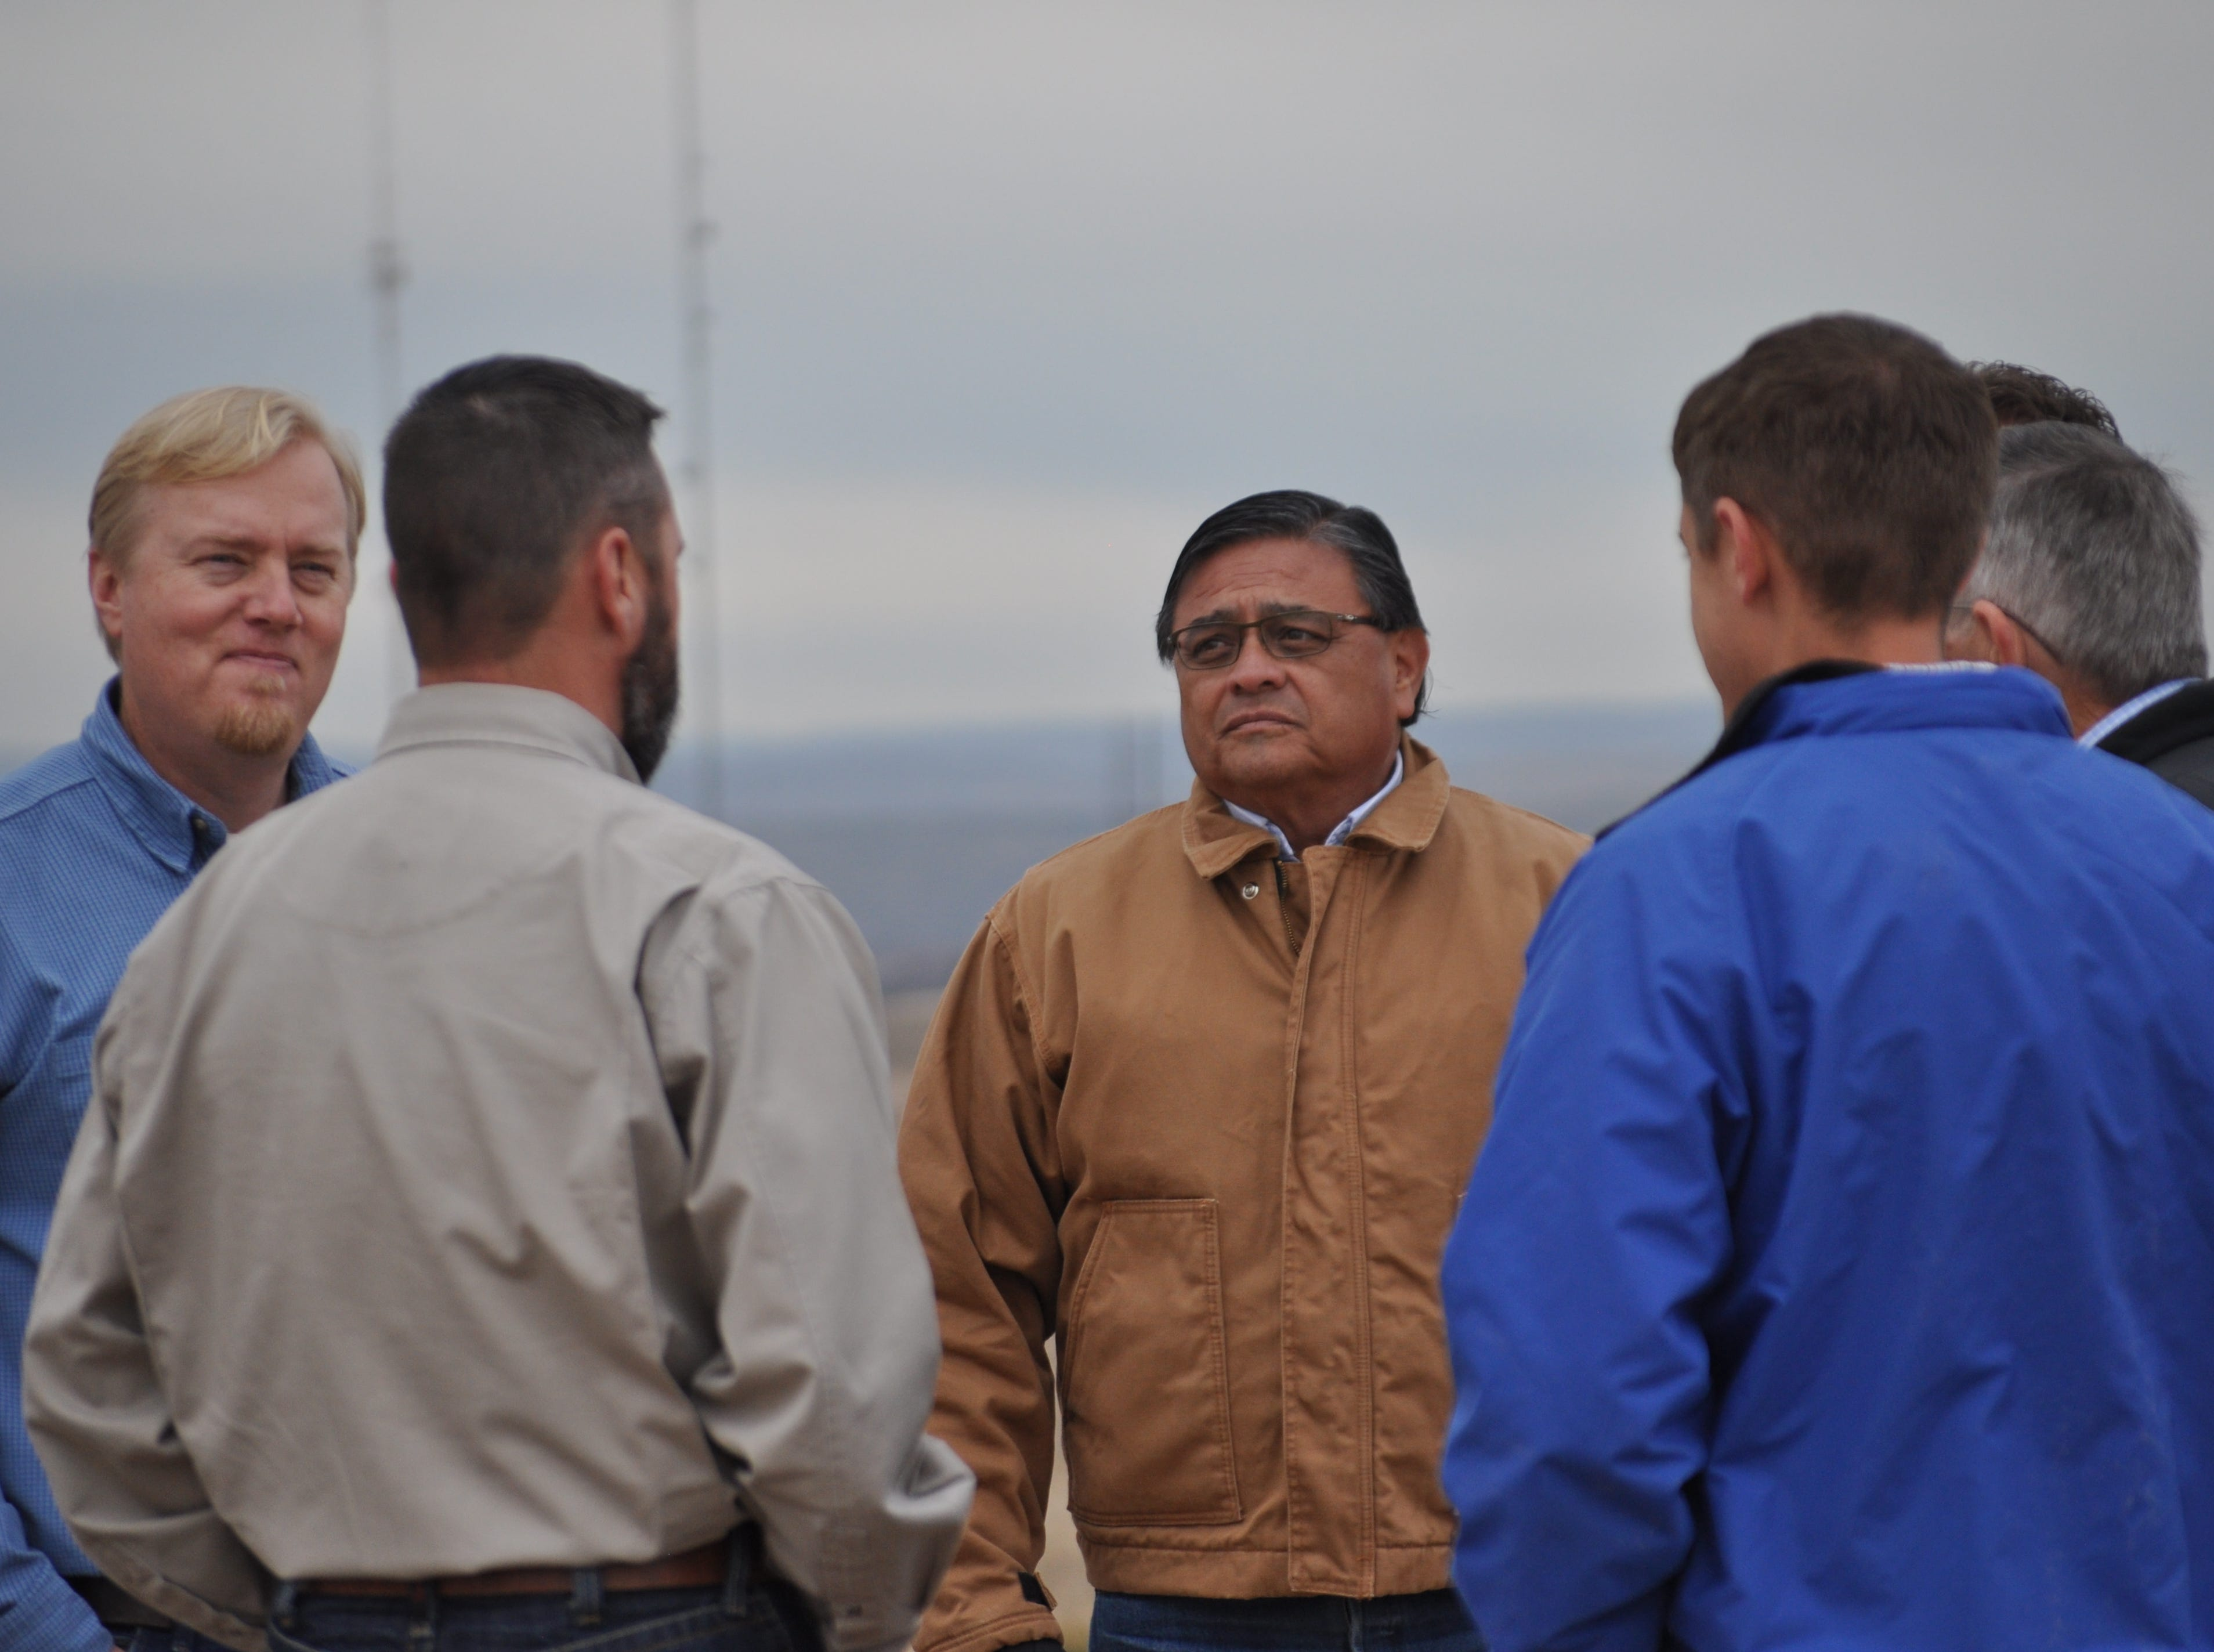 Carlsbad Mayor Pro Tem Eddie Rodriguez, center, Dec. 17 at the site of the Double Eagle Phase 3 project in Carlsbad, New Mexico.